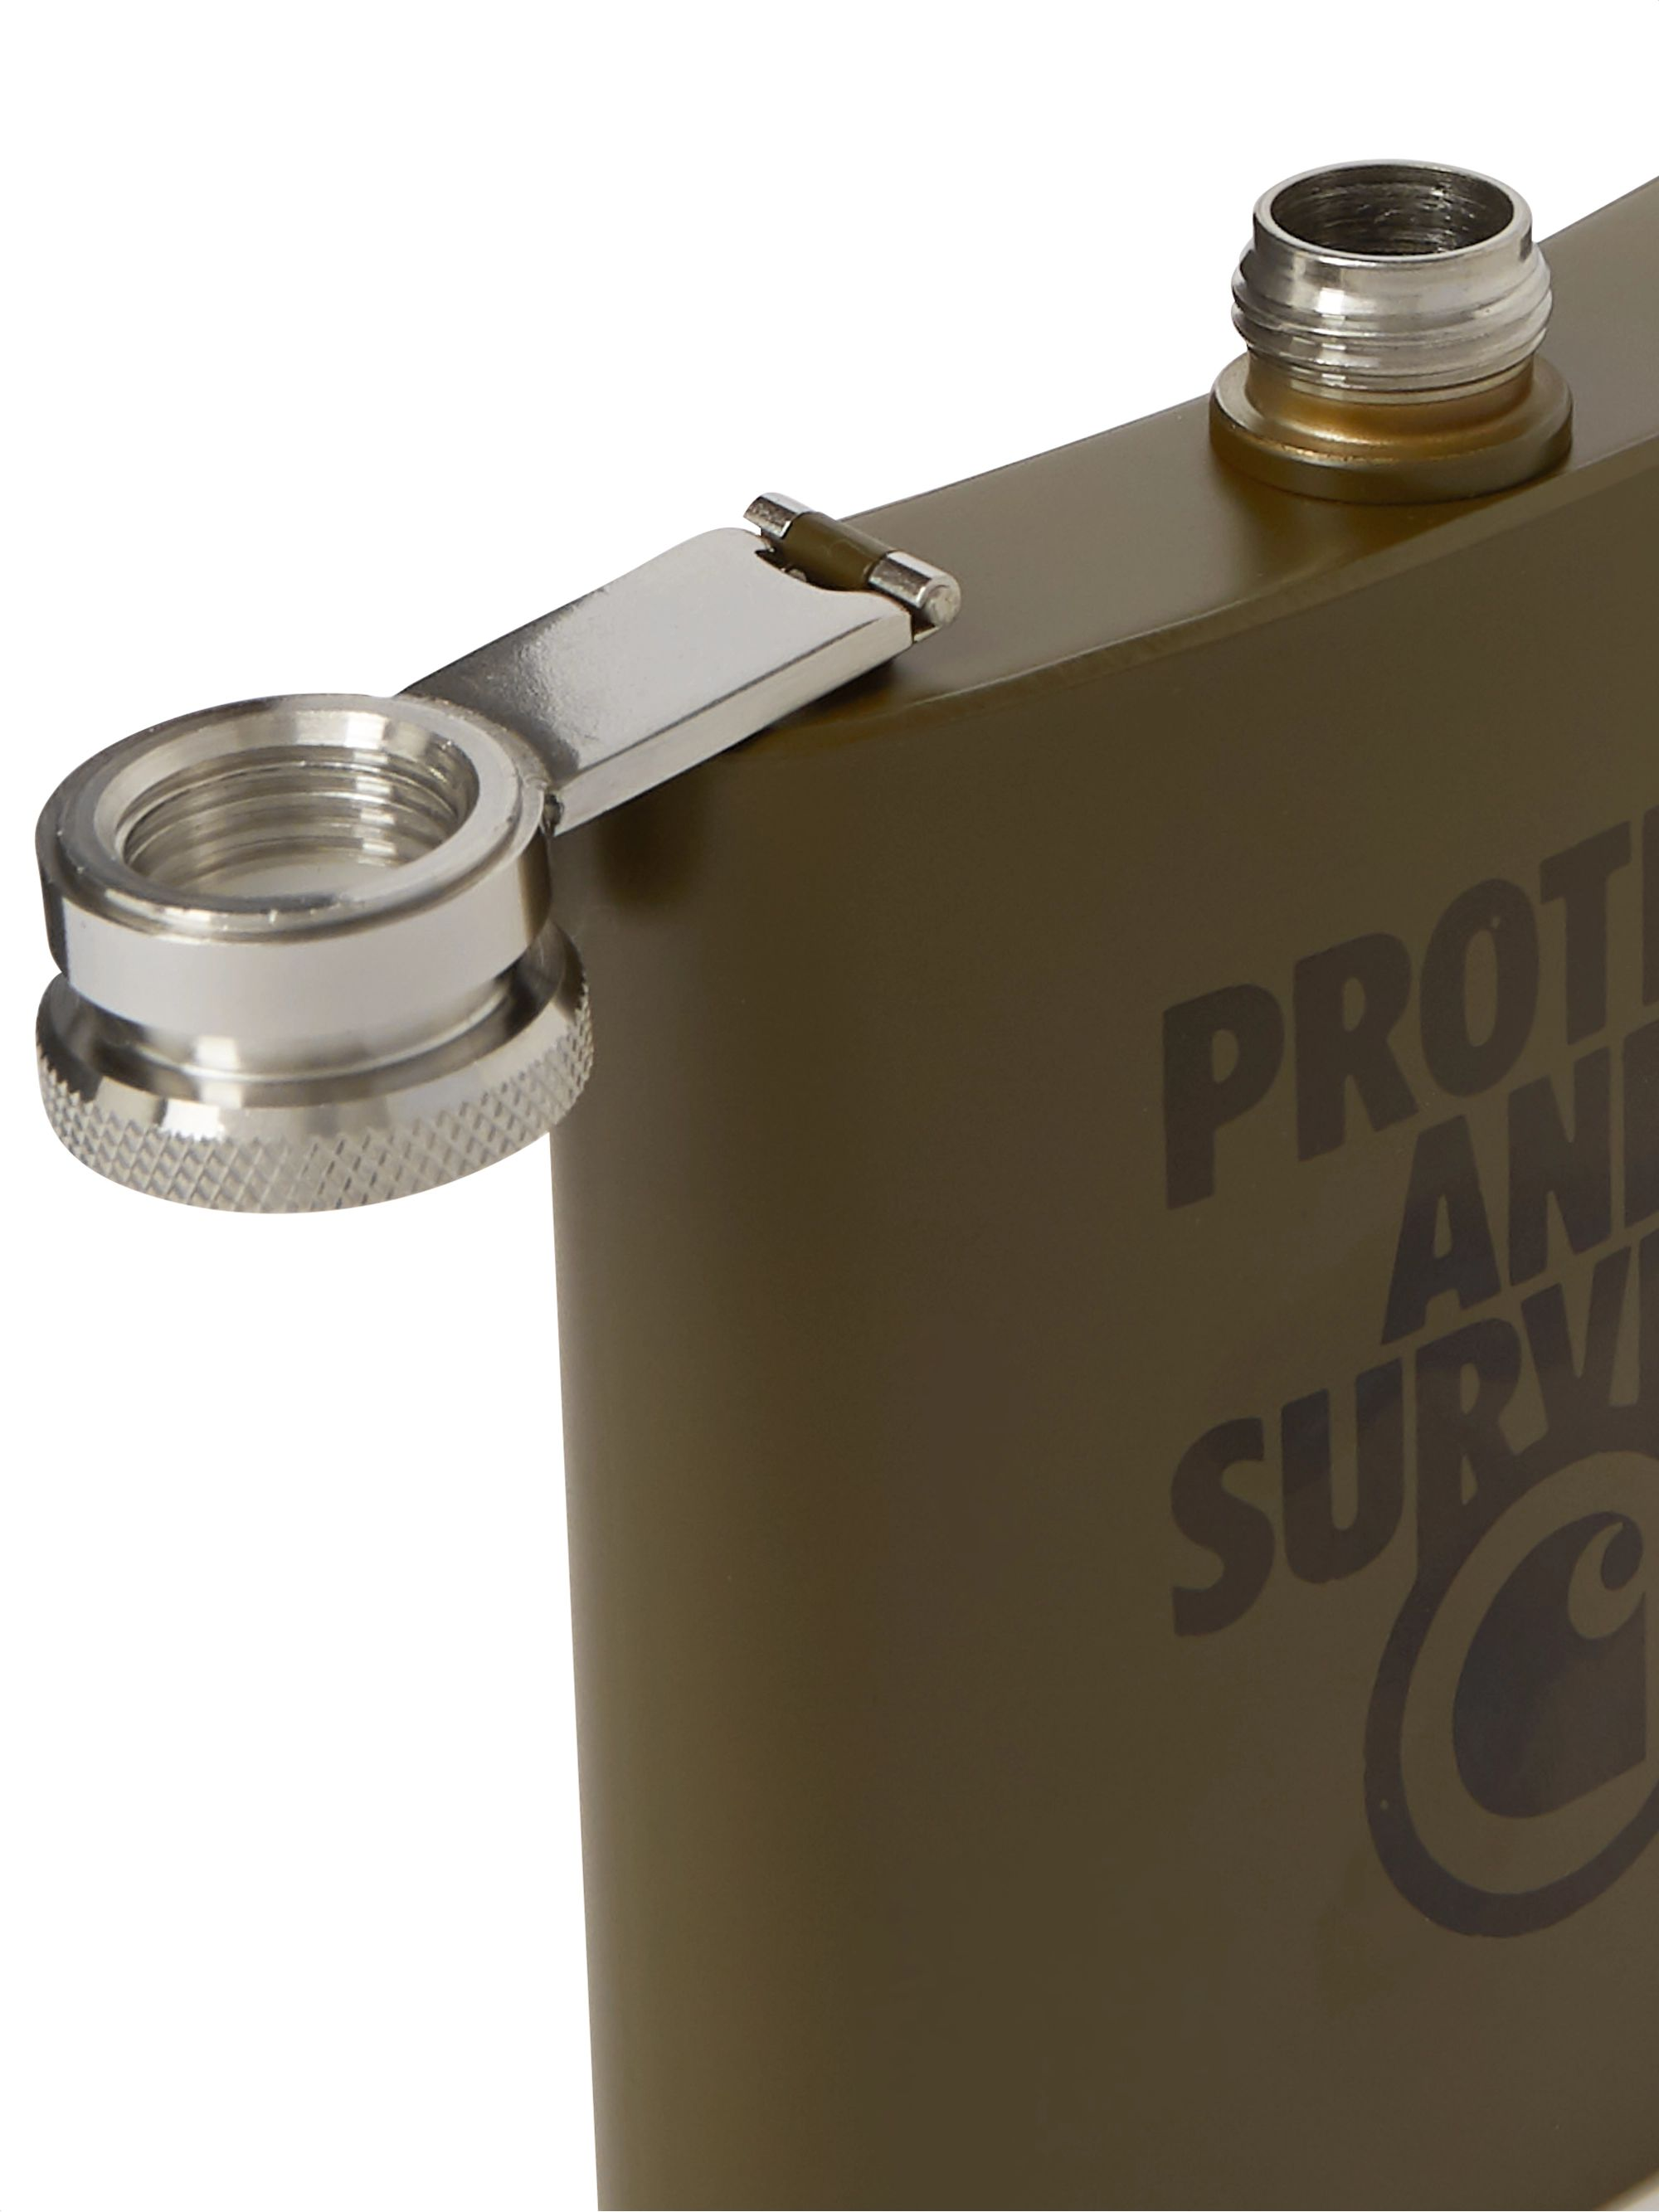 Carhartt WIP 7oz Printed Stainless Steel Hip Flask